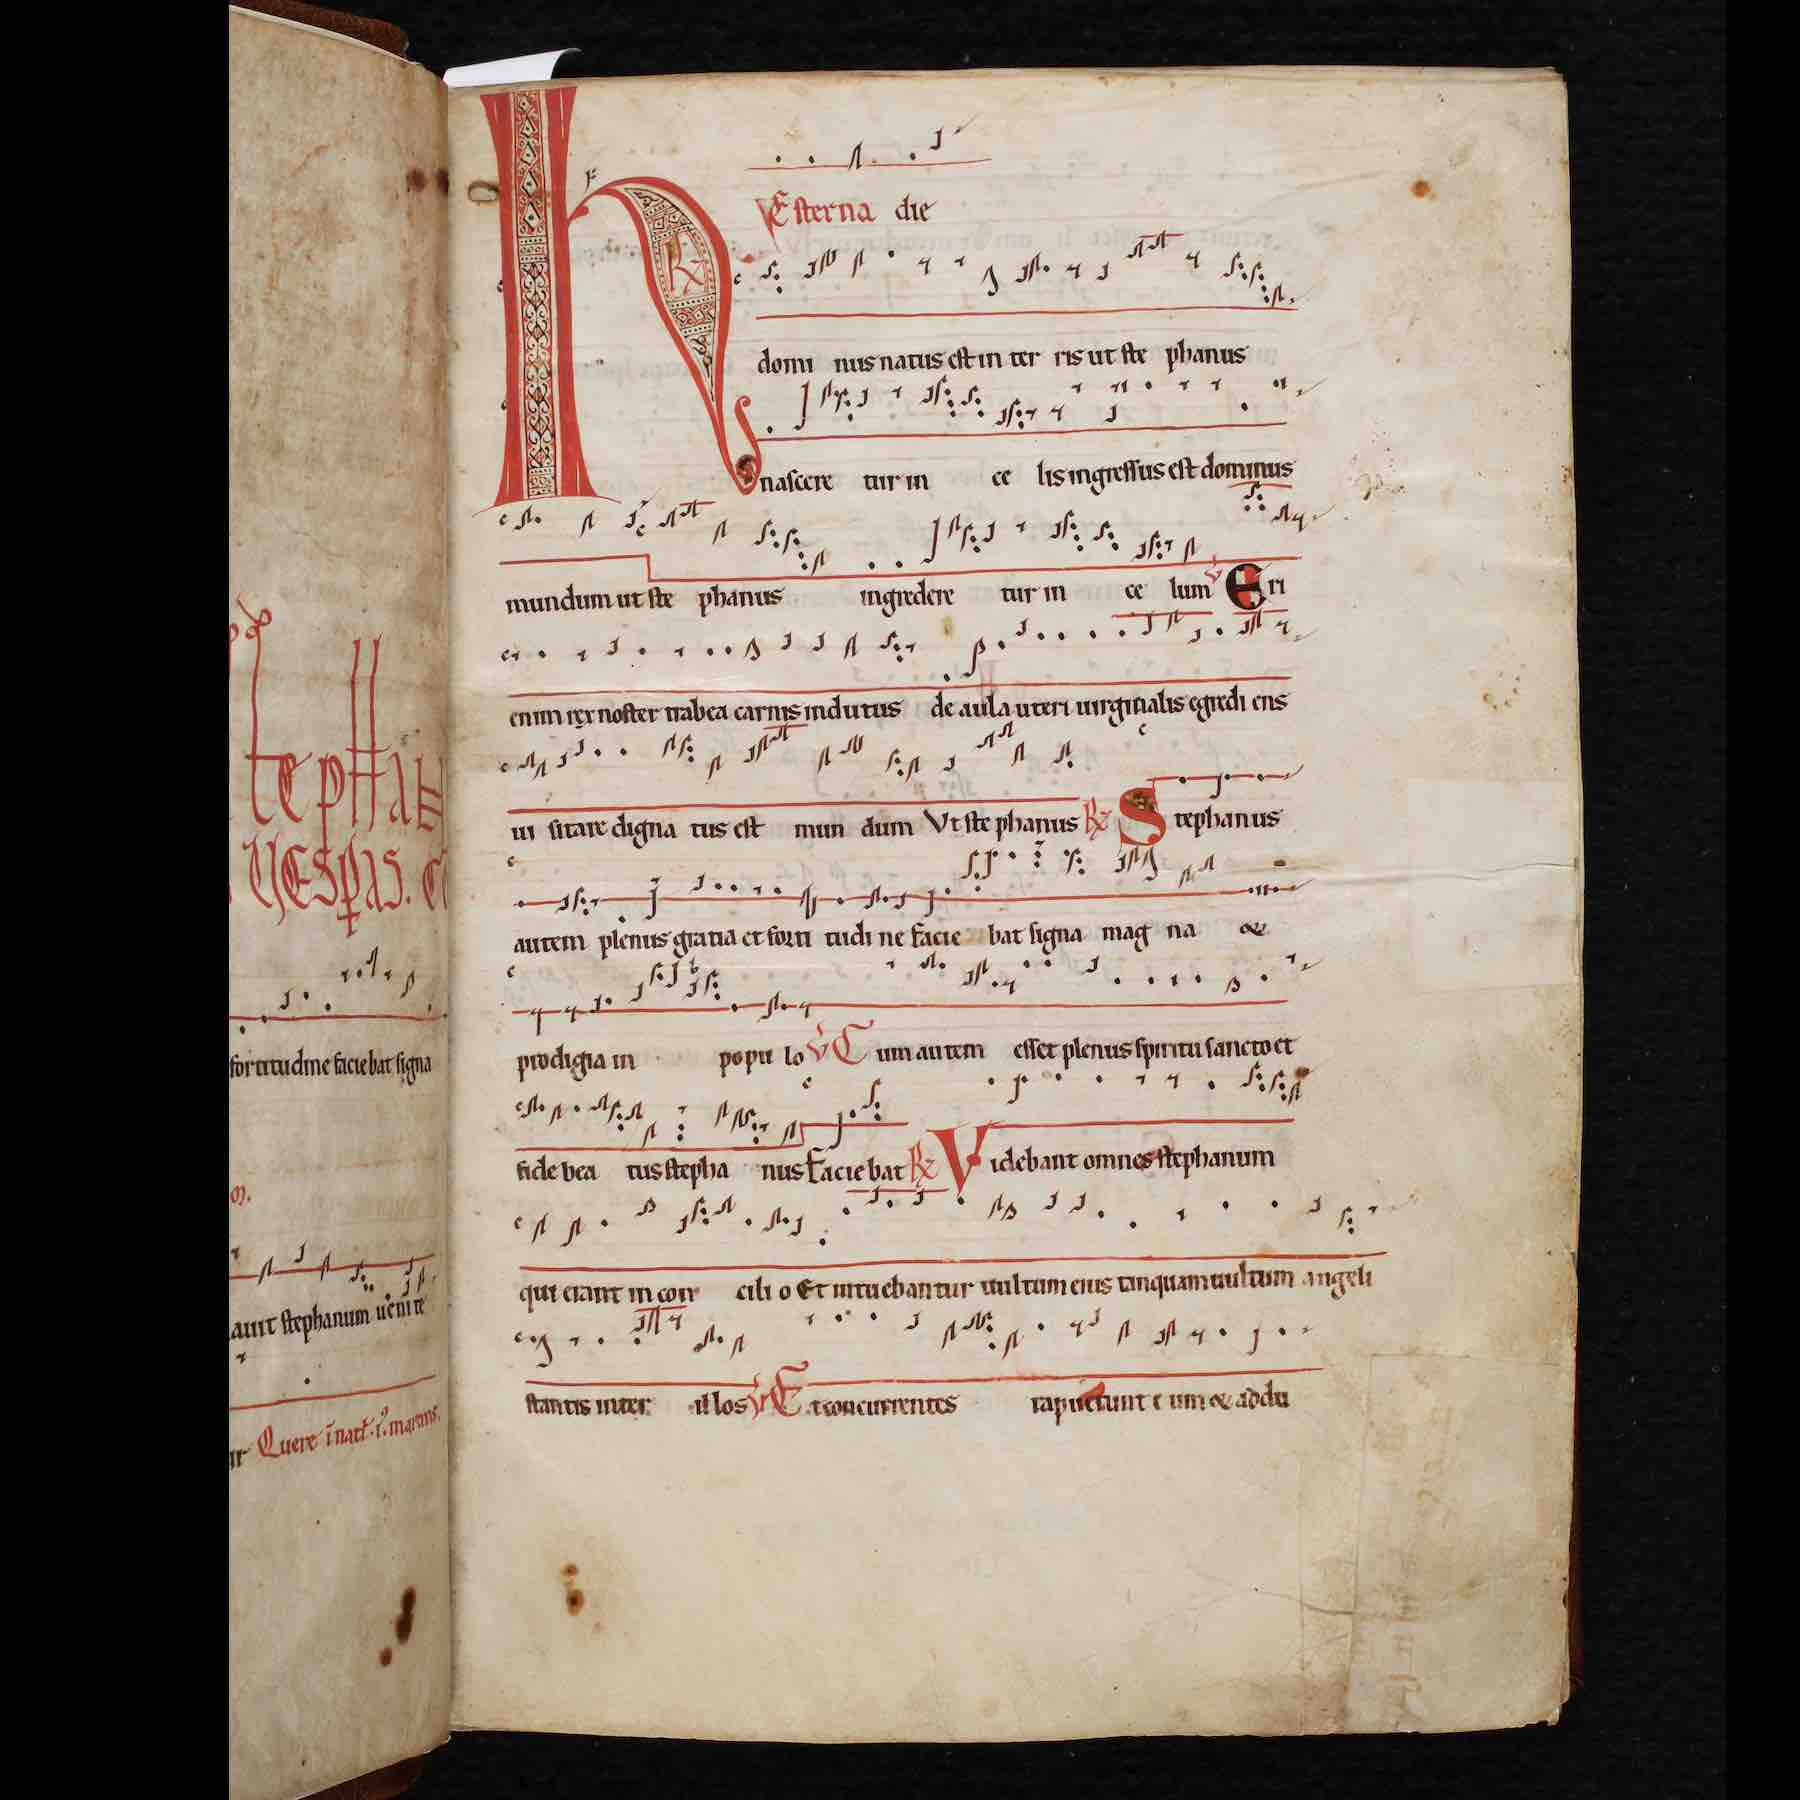 12th-c. French Cistercian Antiphonary, Abbey of Our Lady of Gethsemani, Kentucky (<a href='https://w3id.org/vhmml/readingRoom/view/500922'>AGOC 1</a>)